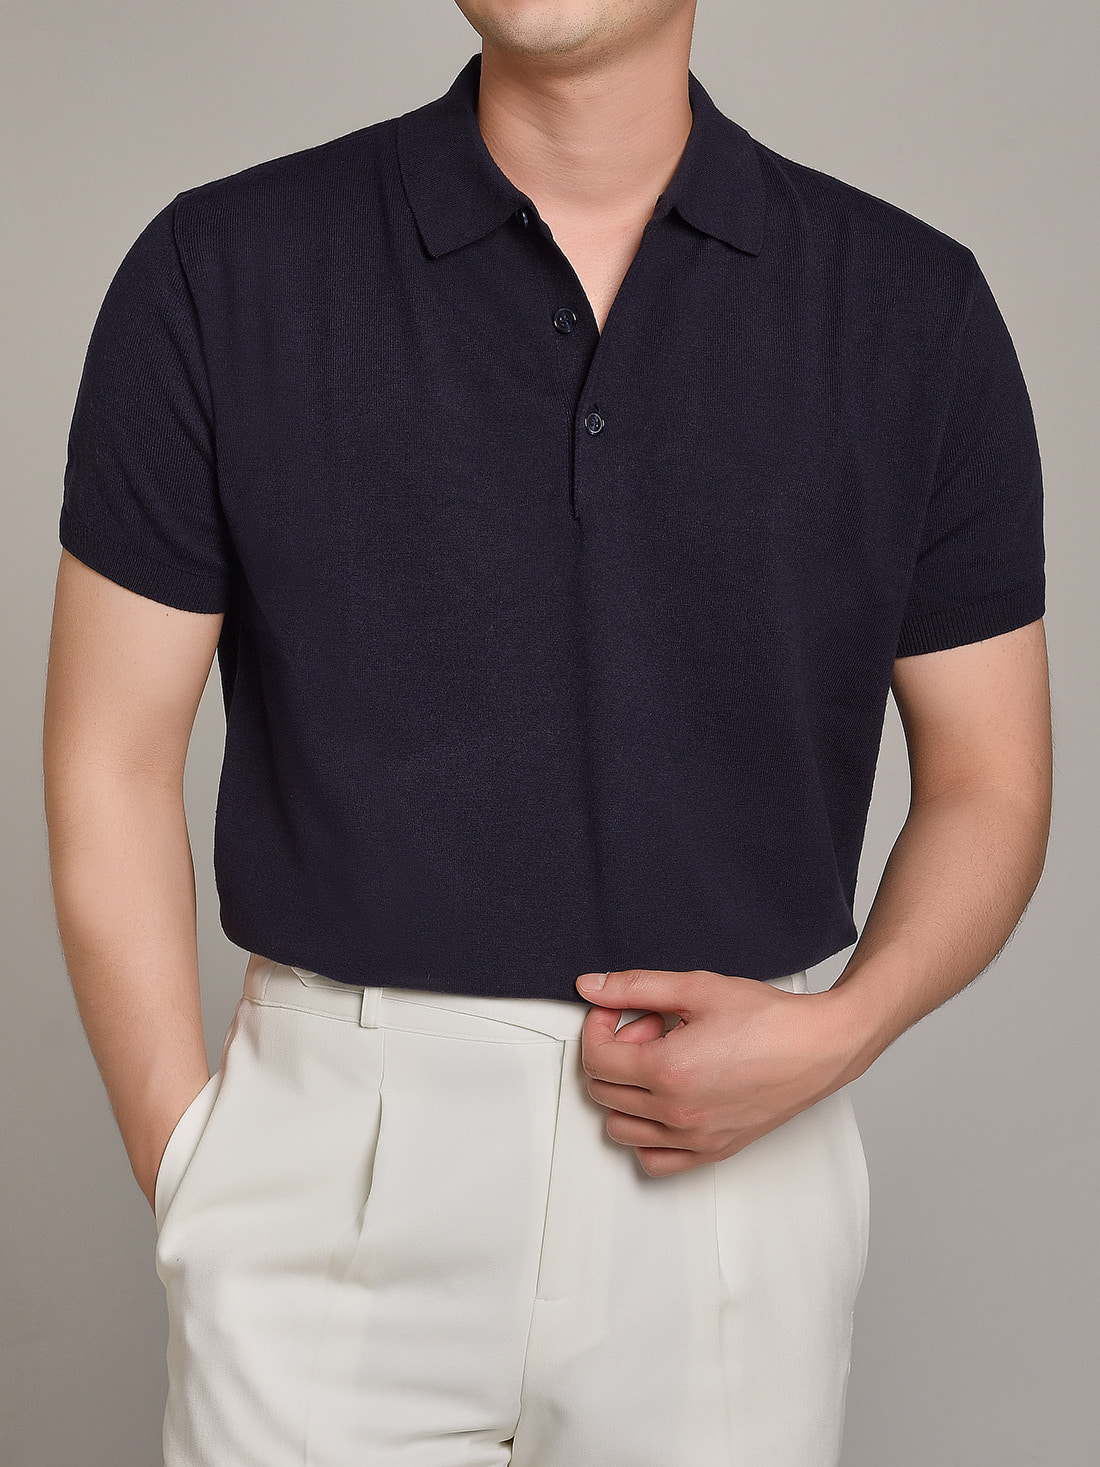 soft touch solid polo knit (navy)